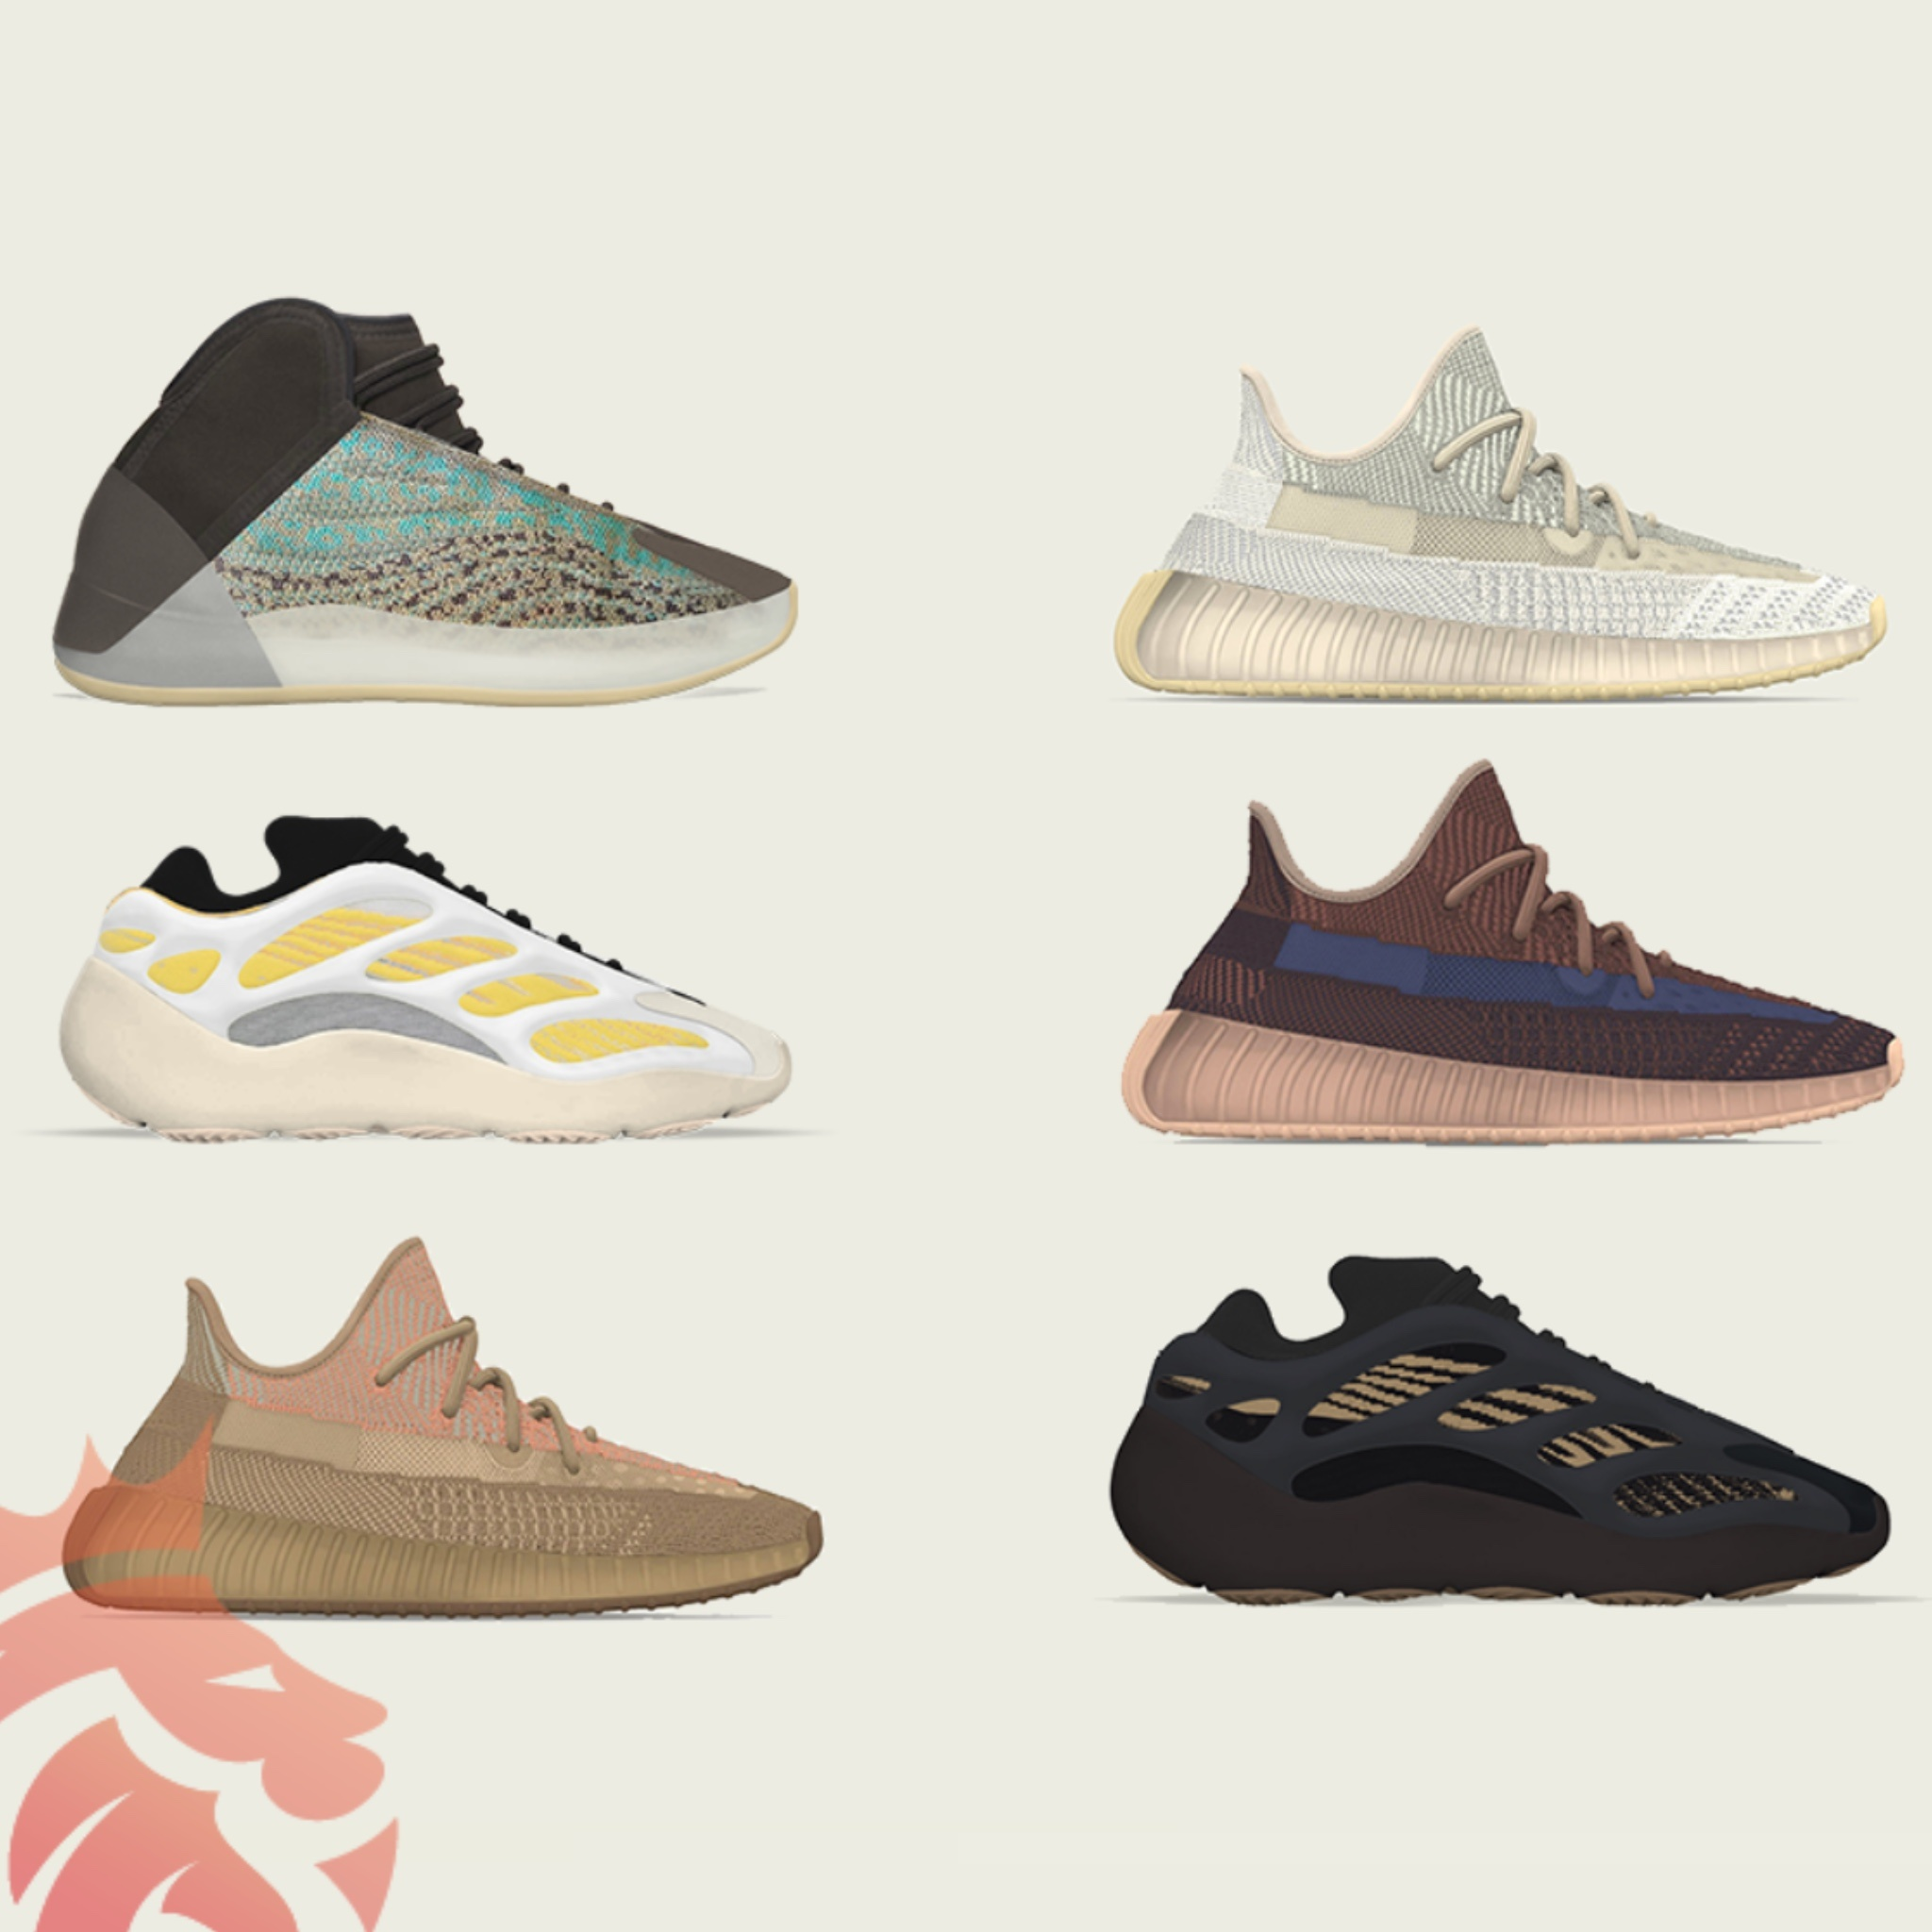 adidas Yeezy Fall Collection Name Changes